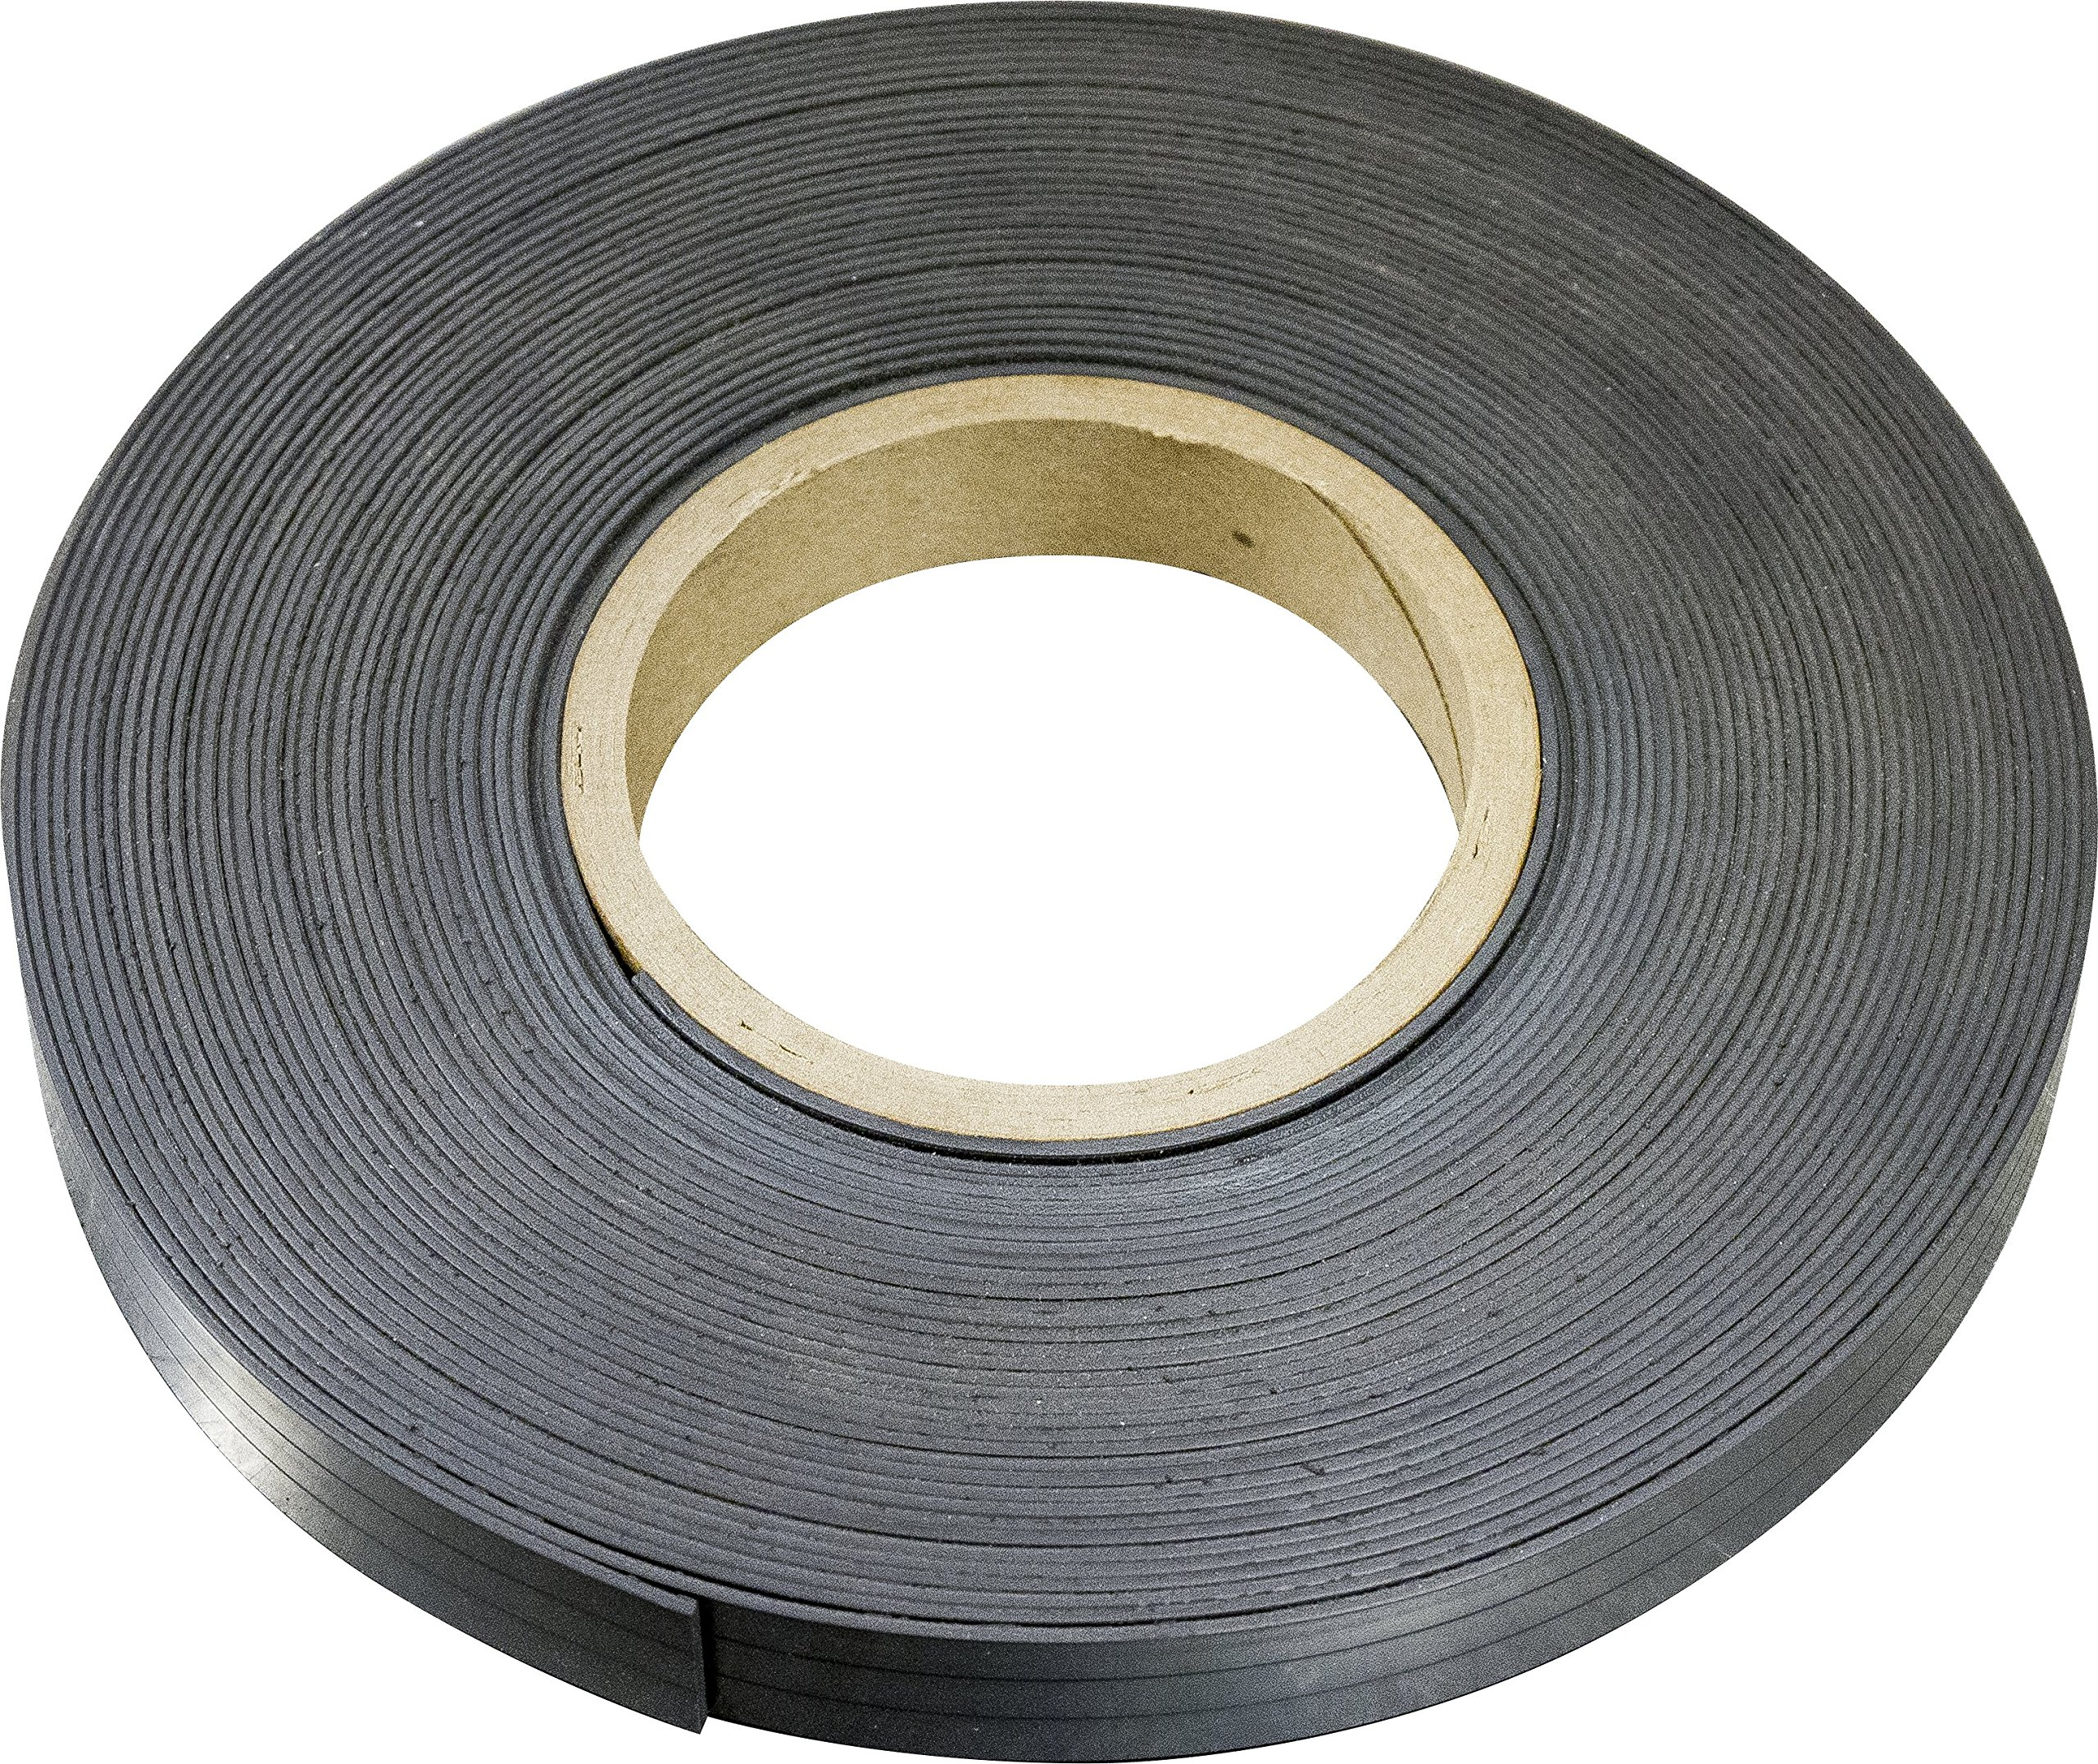 MAG-MATE MRN120X0075X100 Flexible Magnet Material Without Adhesive, 0.120 x 3/4 x 100'